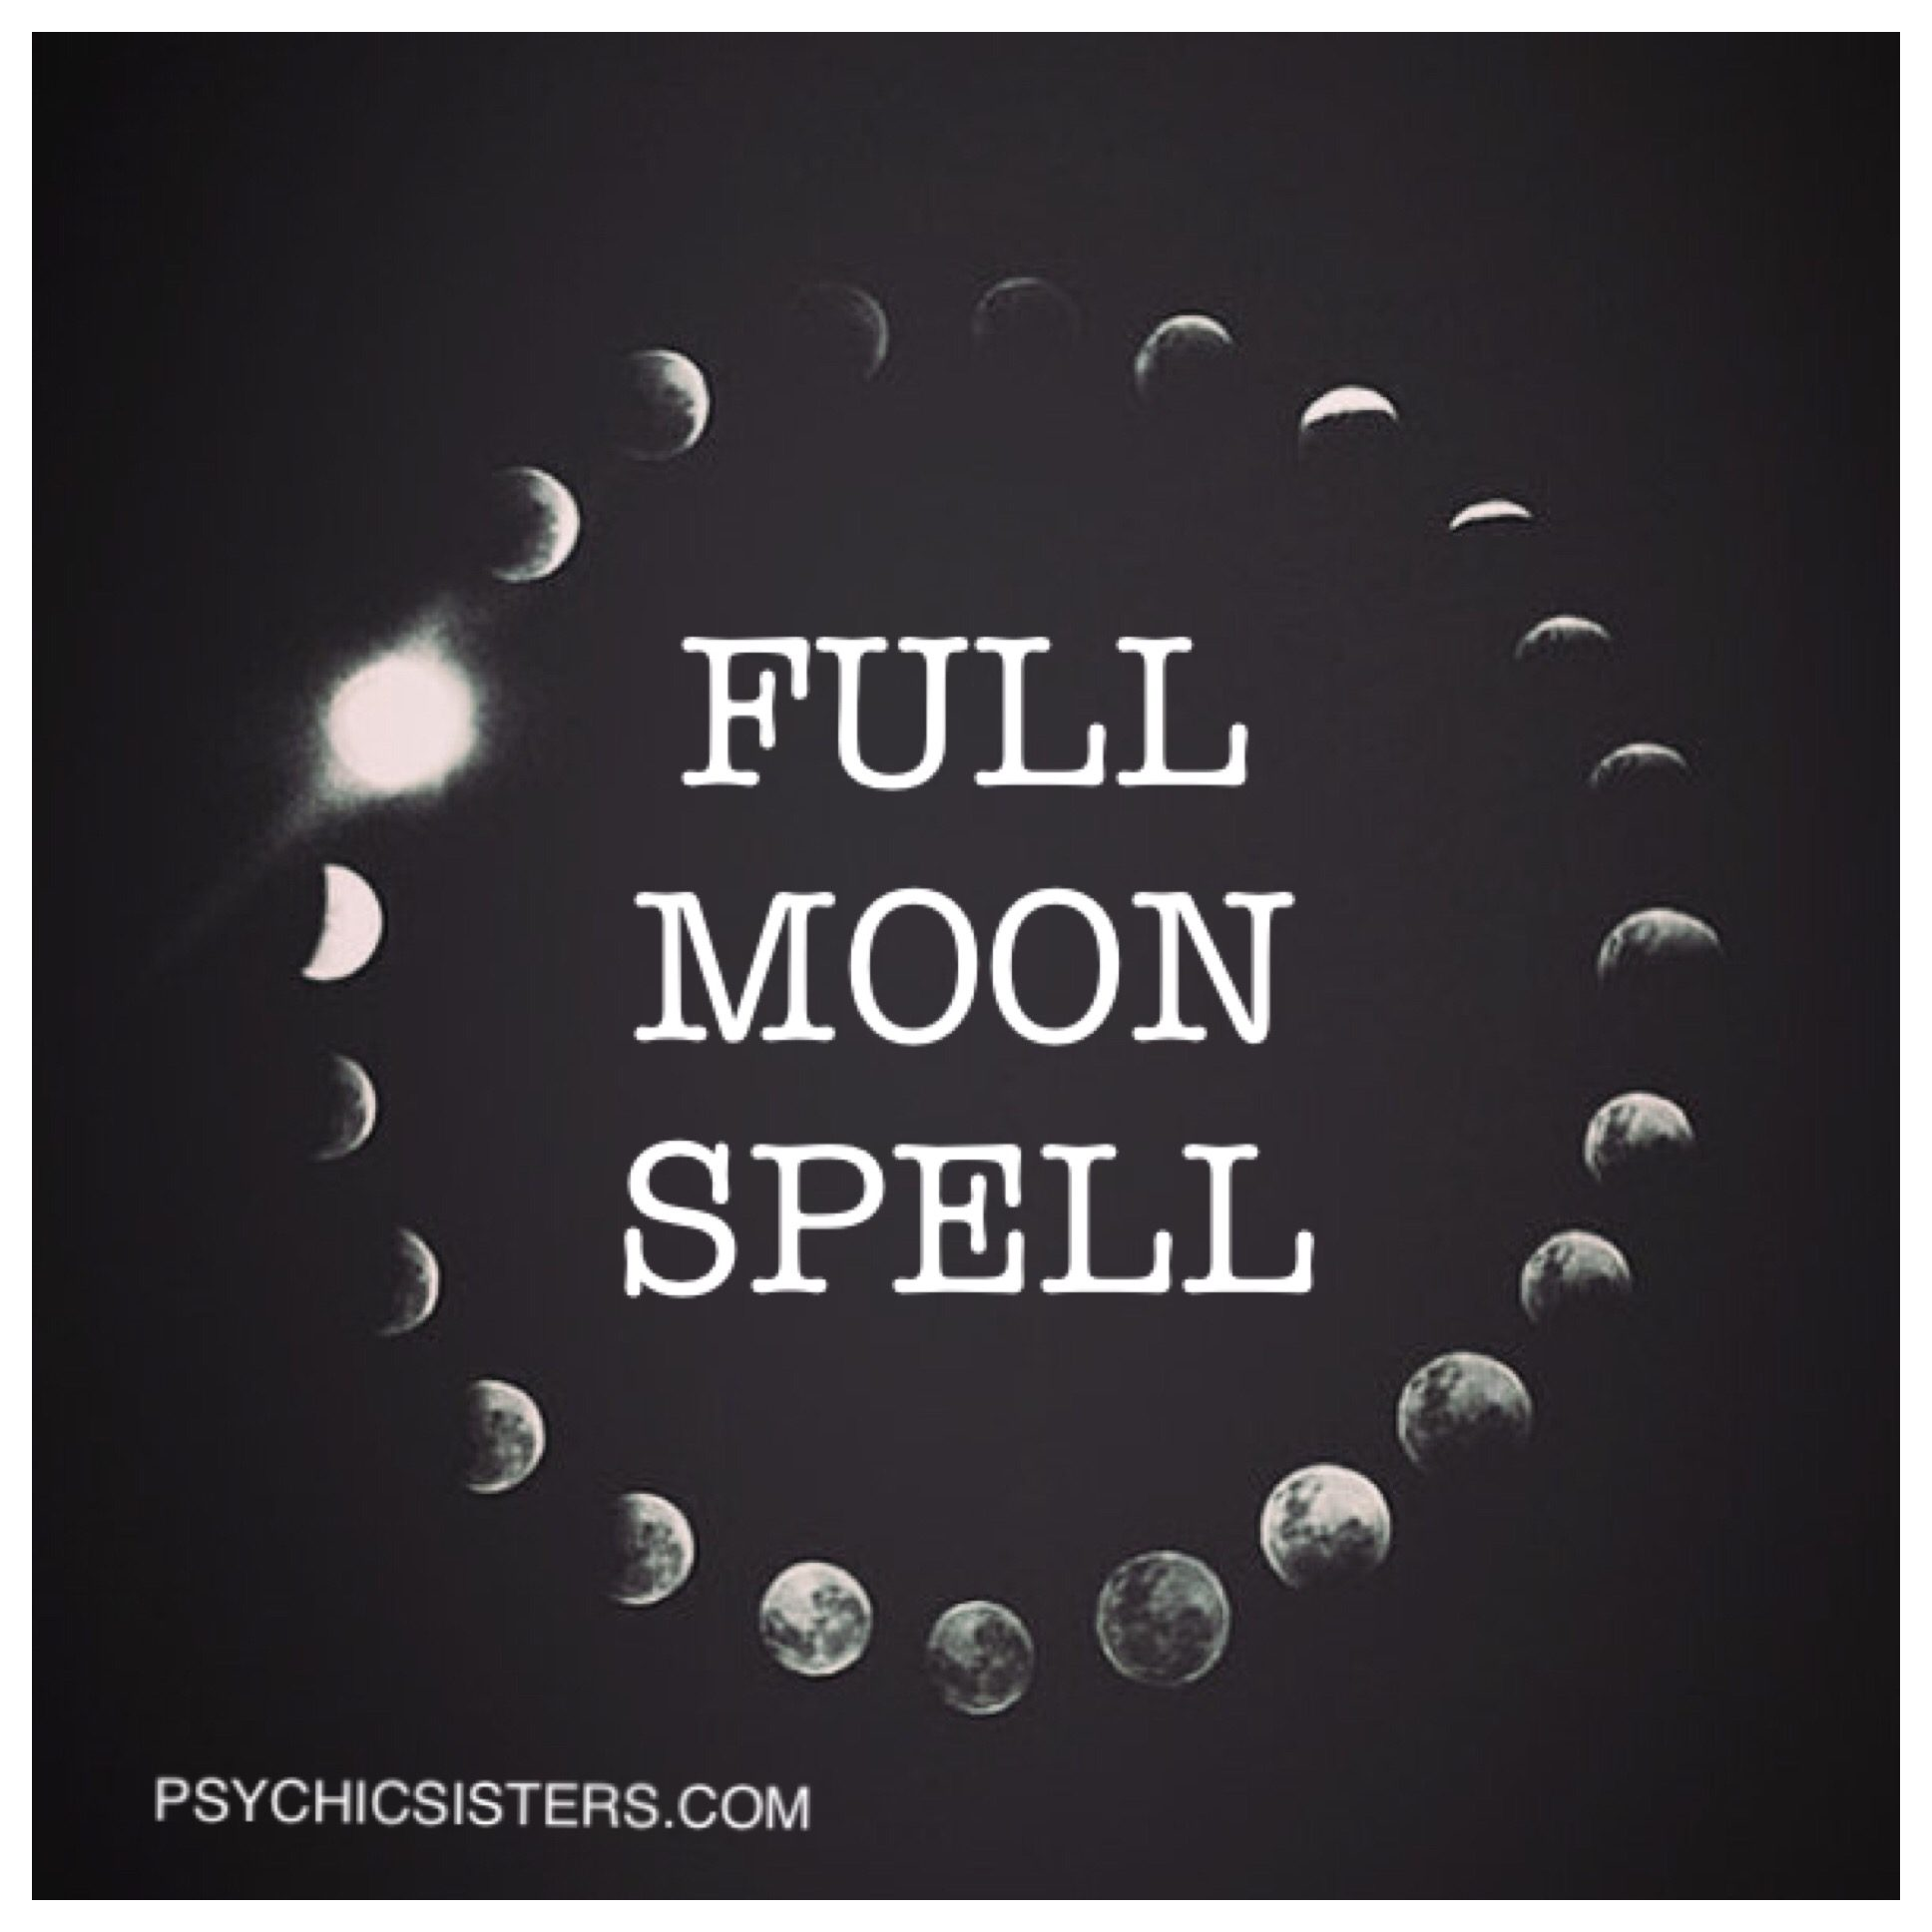 FULL MOON MAGIC